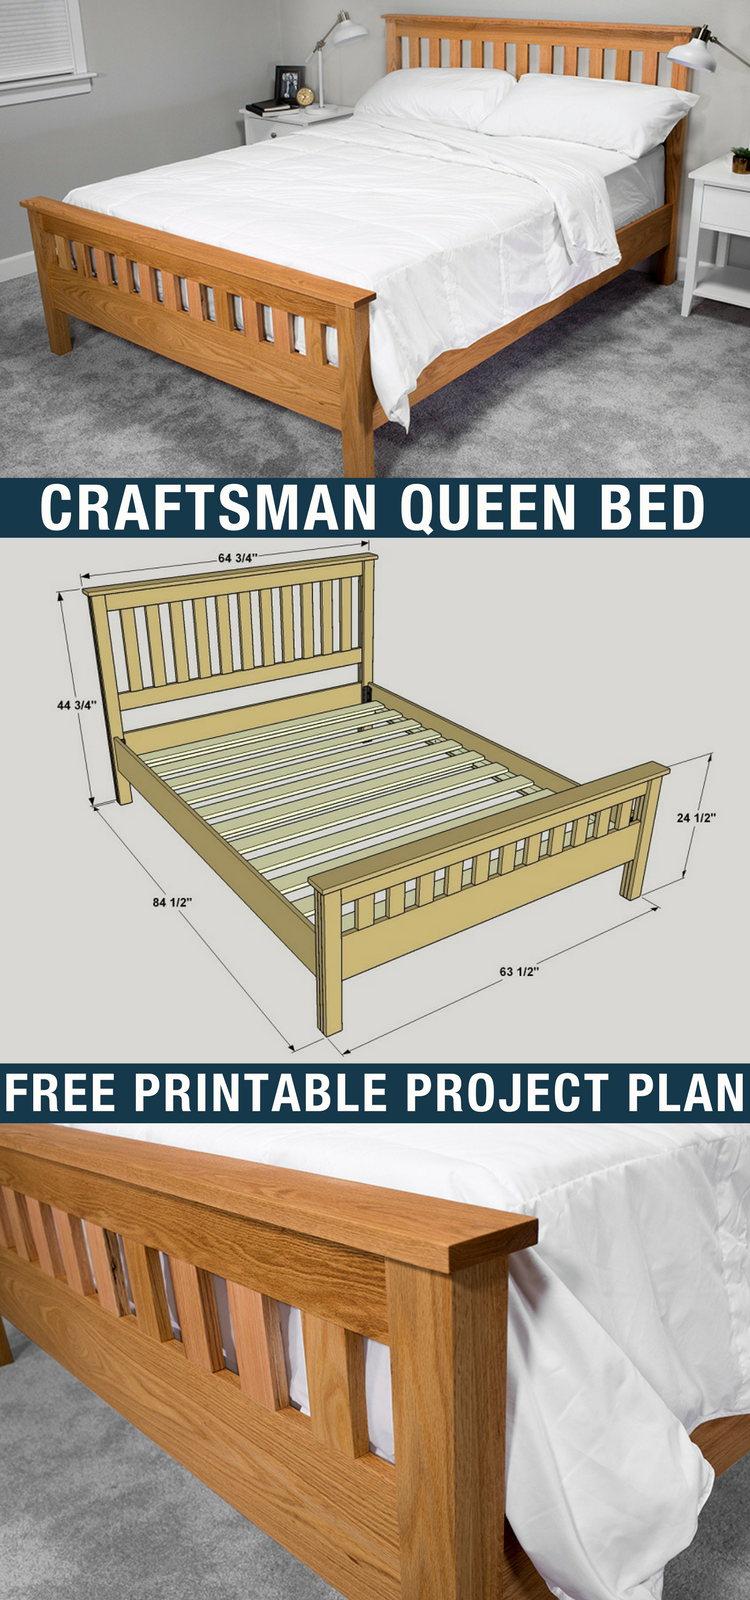 Diy Craftsman Style Queen Bed Free Printable Project Plans